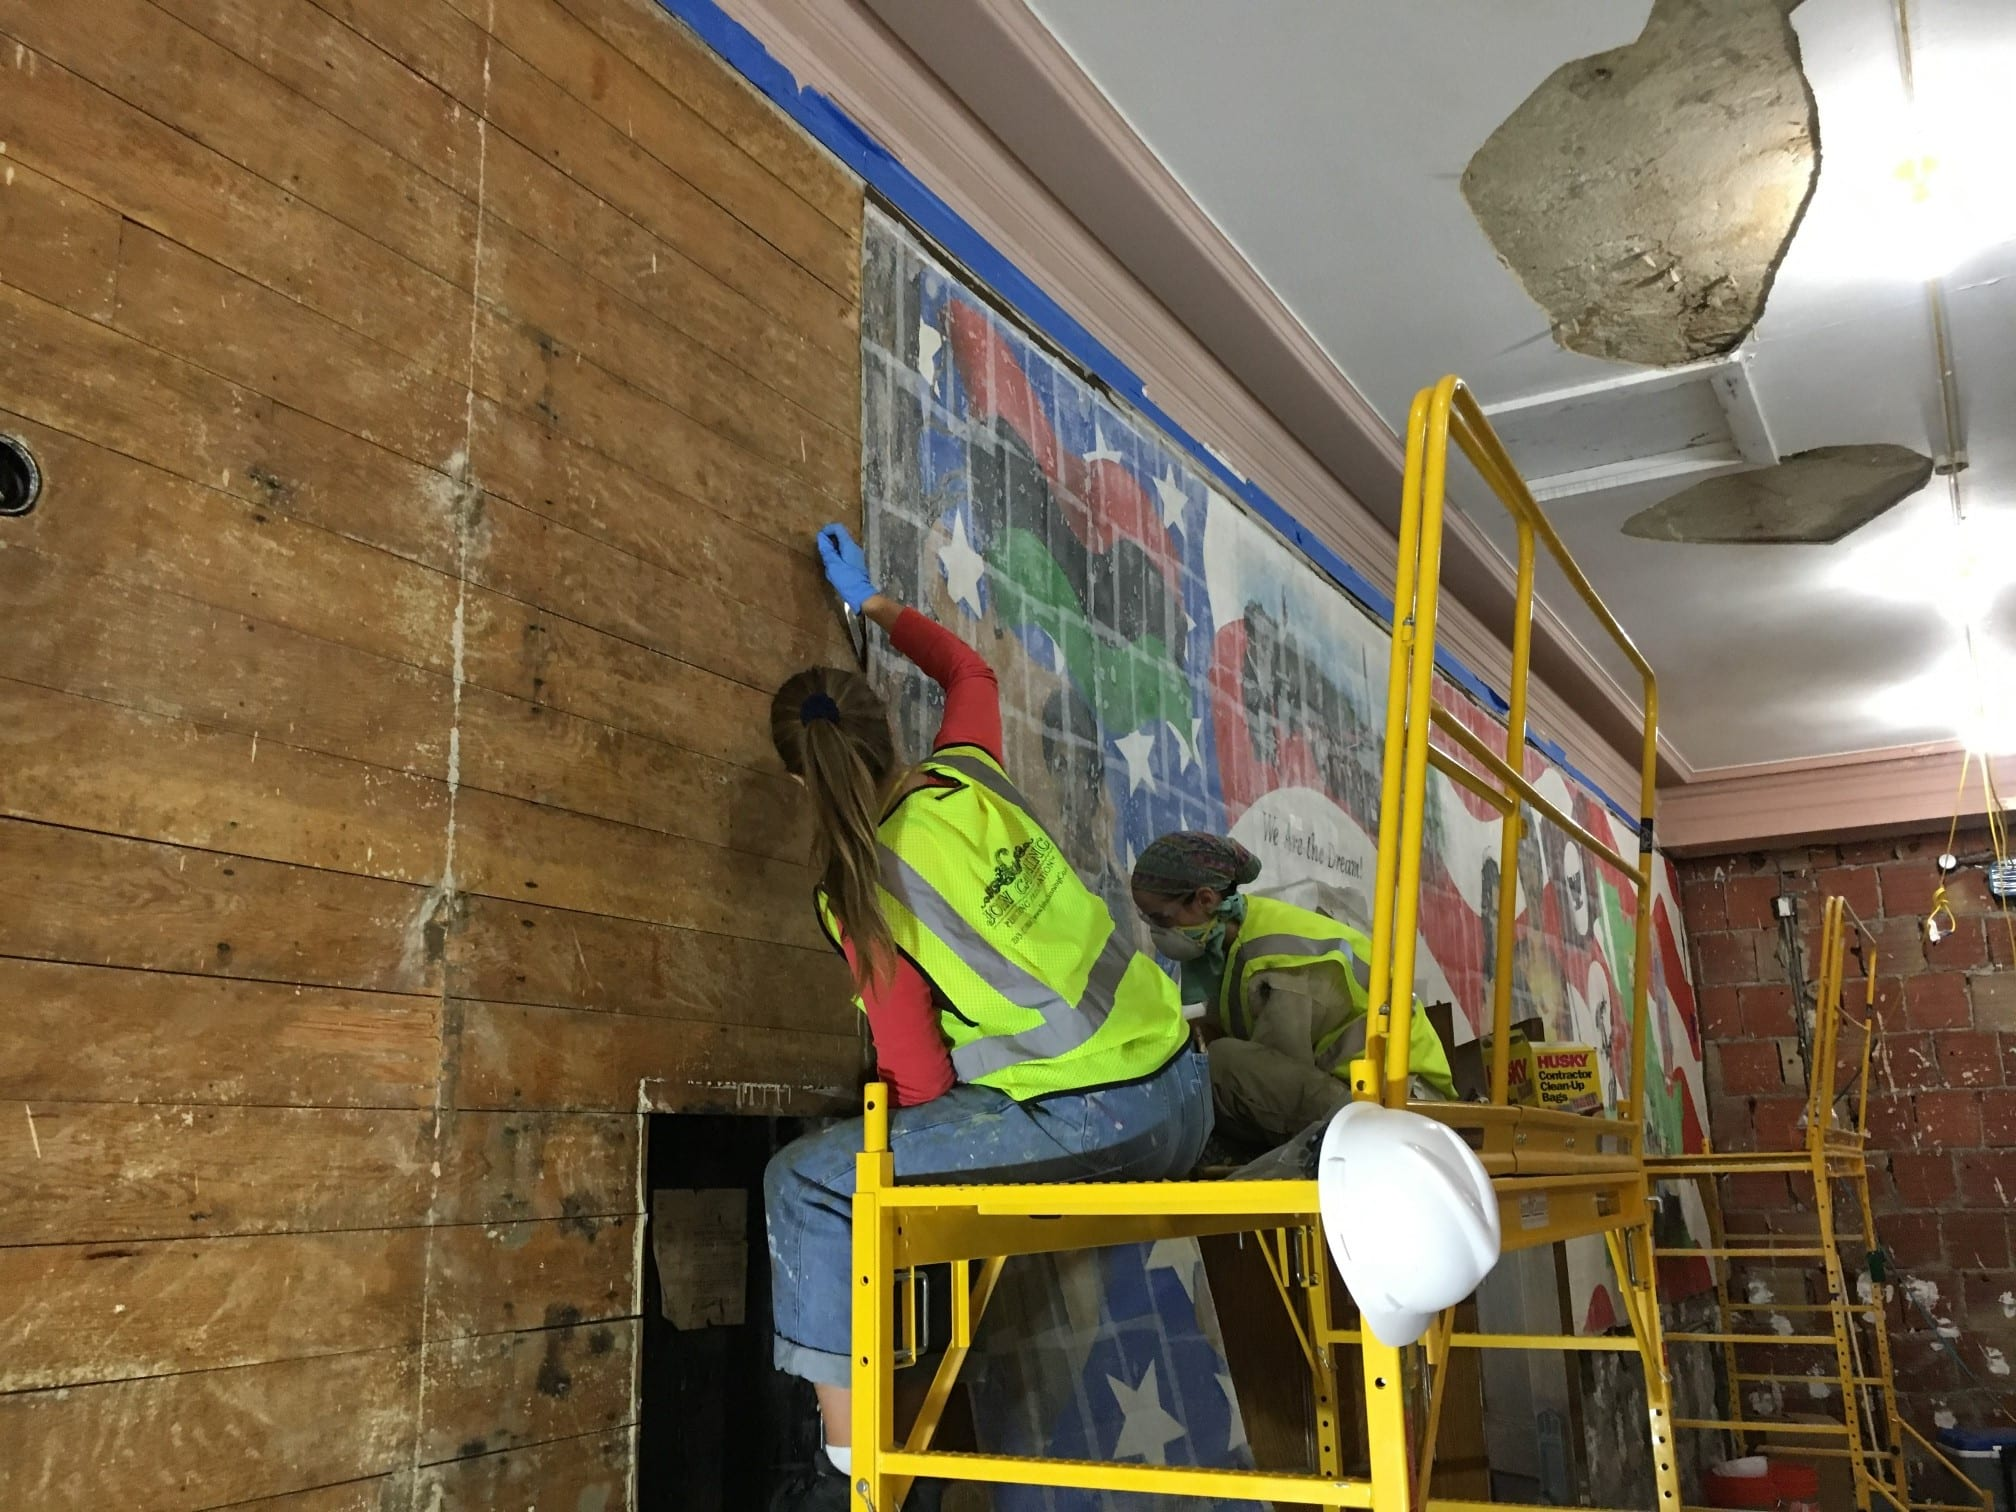 Two women in yellow construction vests sit on metal scaffolding as they remove a section of the mural from the wooden planks behind it that run horizontally across the length of the wall.